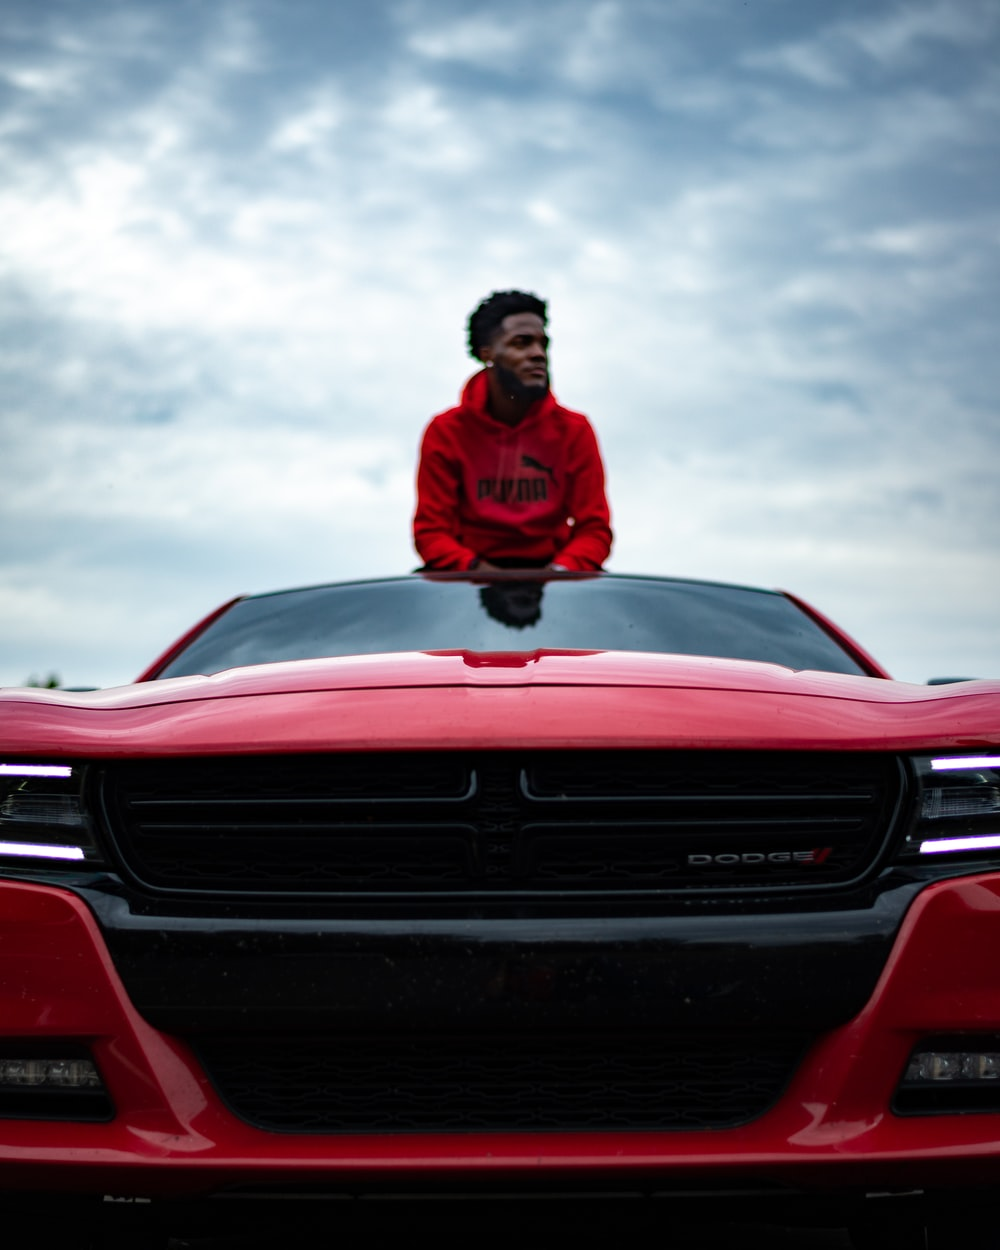 man in red jacket sitting on red chevrolet car